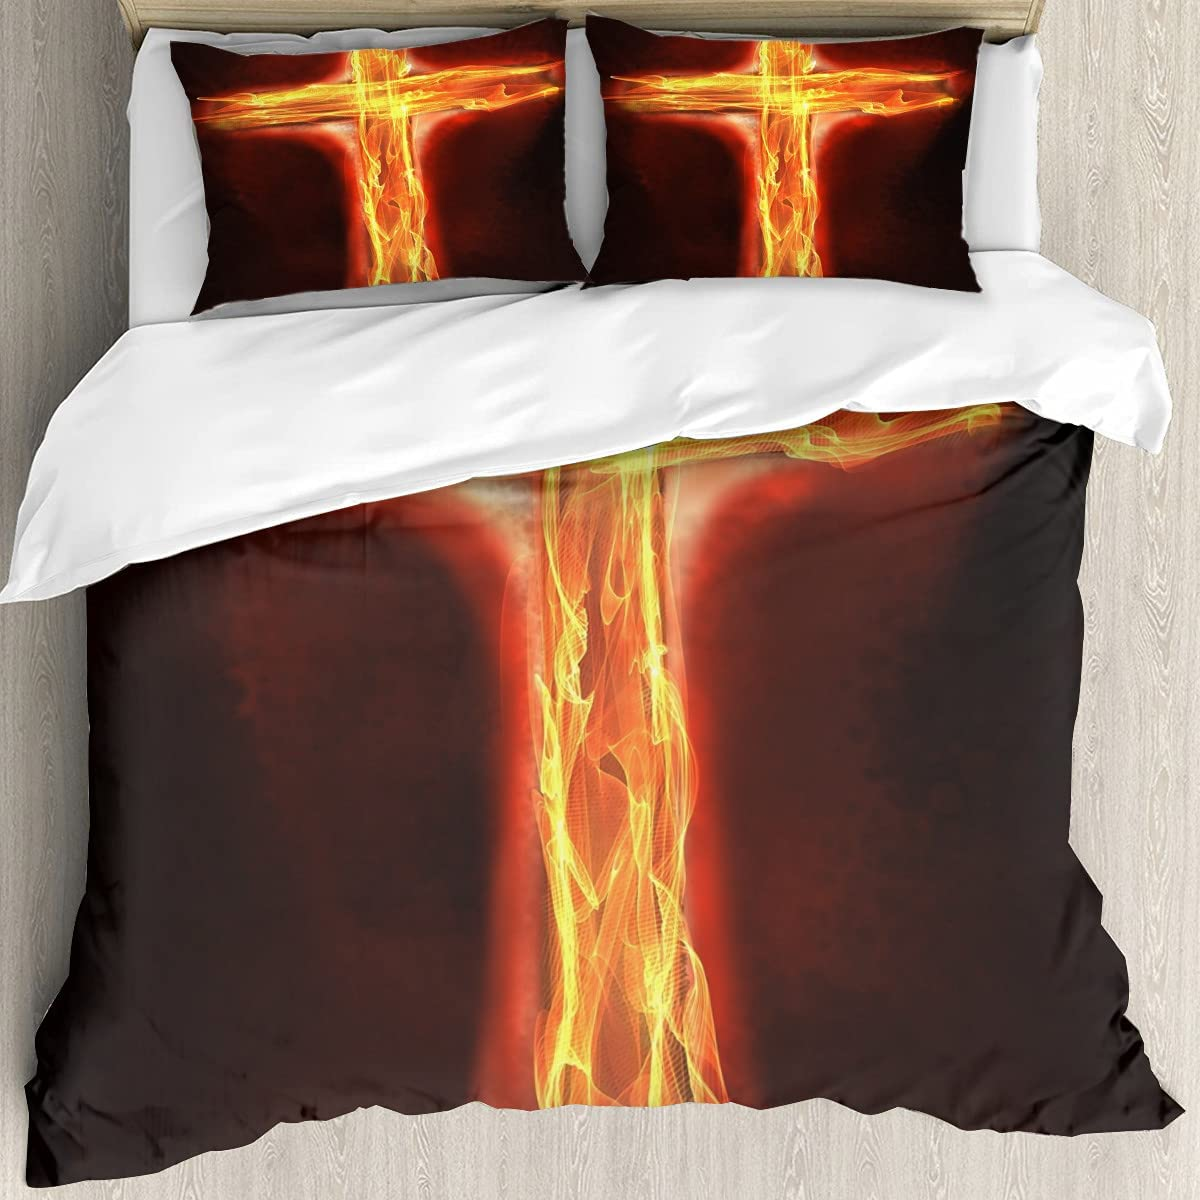 The Cross Philadelphia Mall 3D Printing Memphis Mall Cover Twin Breathable and Soft Set Bedding